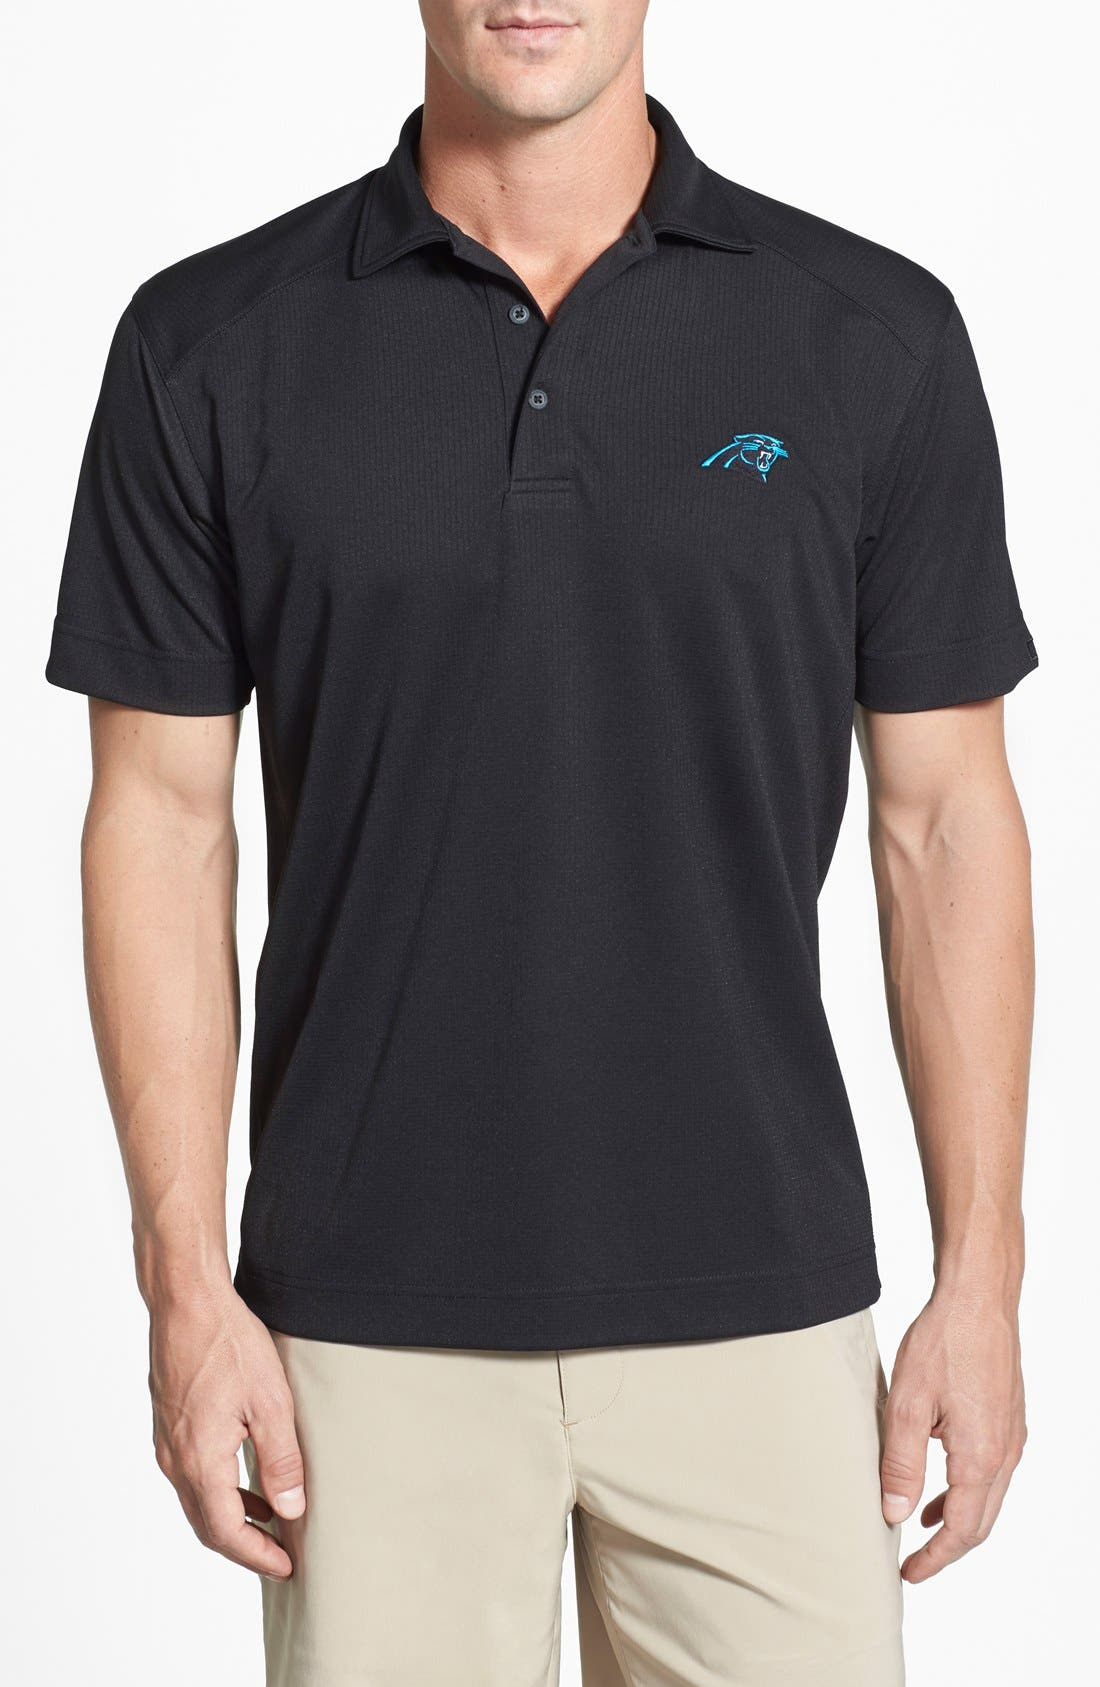 Cutter & Buck Carolina Panthers - Genre DryTec Moisture Wicking Polo